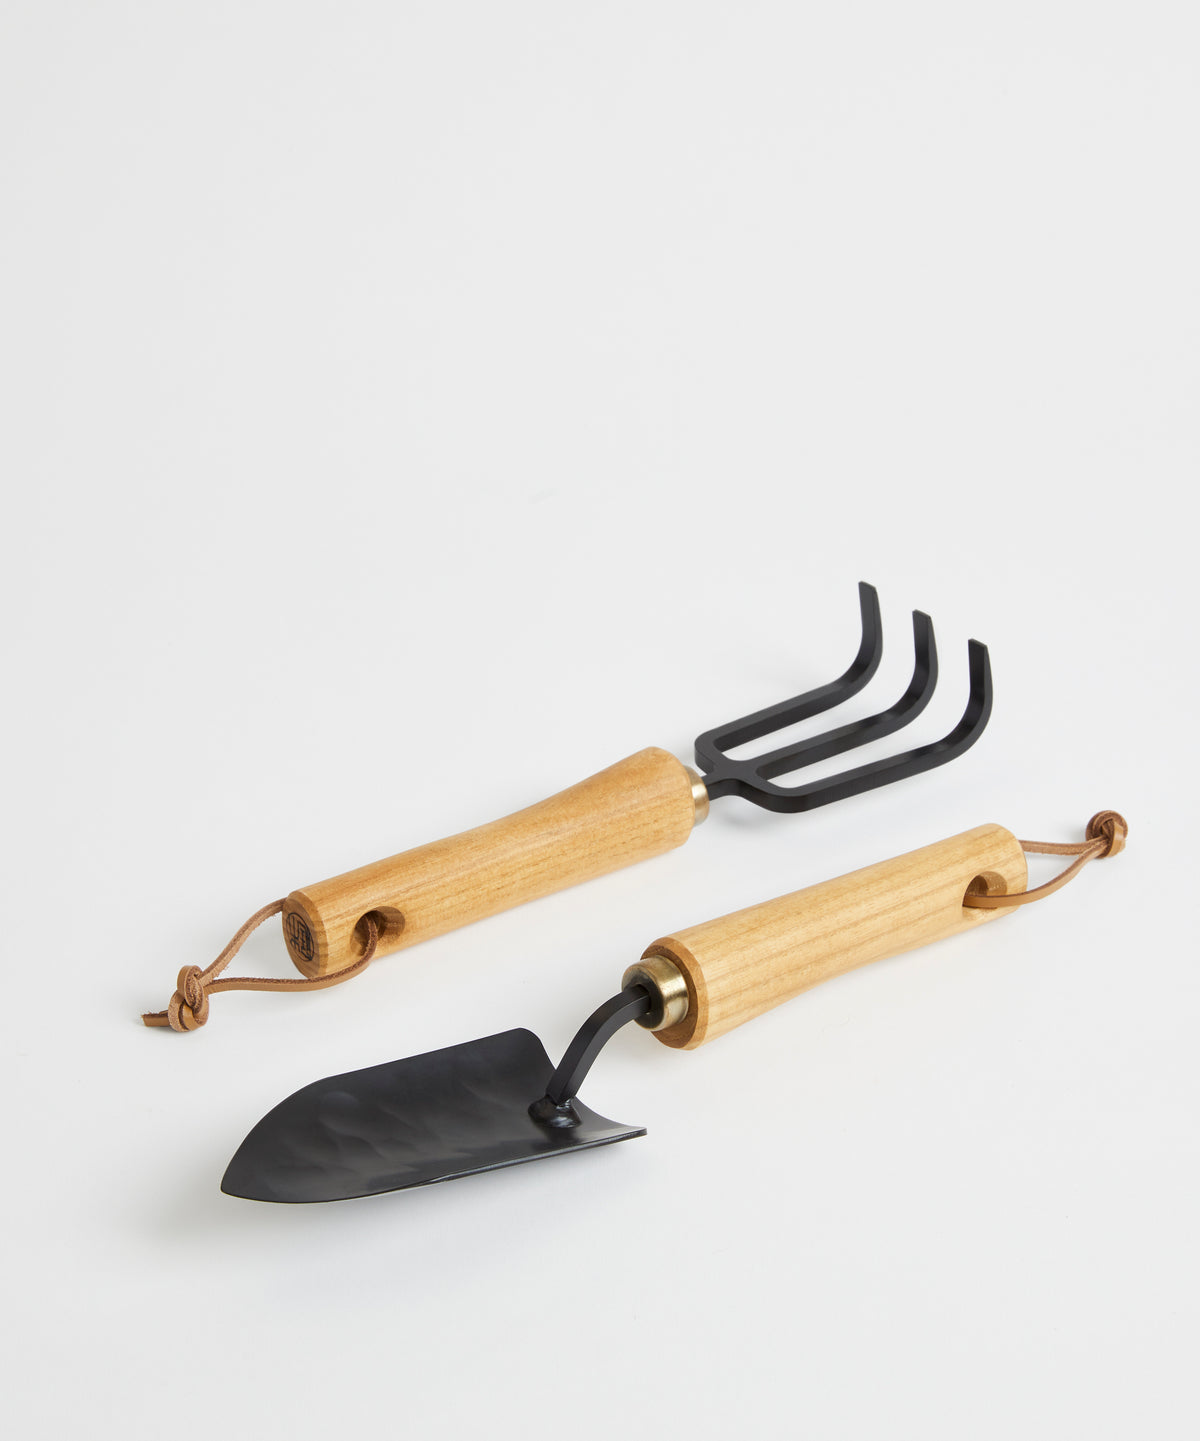 Steel & Wood Japanese Garden Trowel